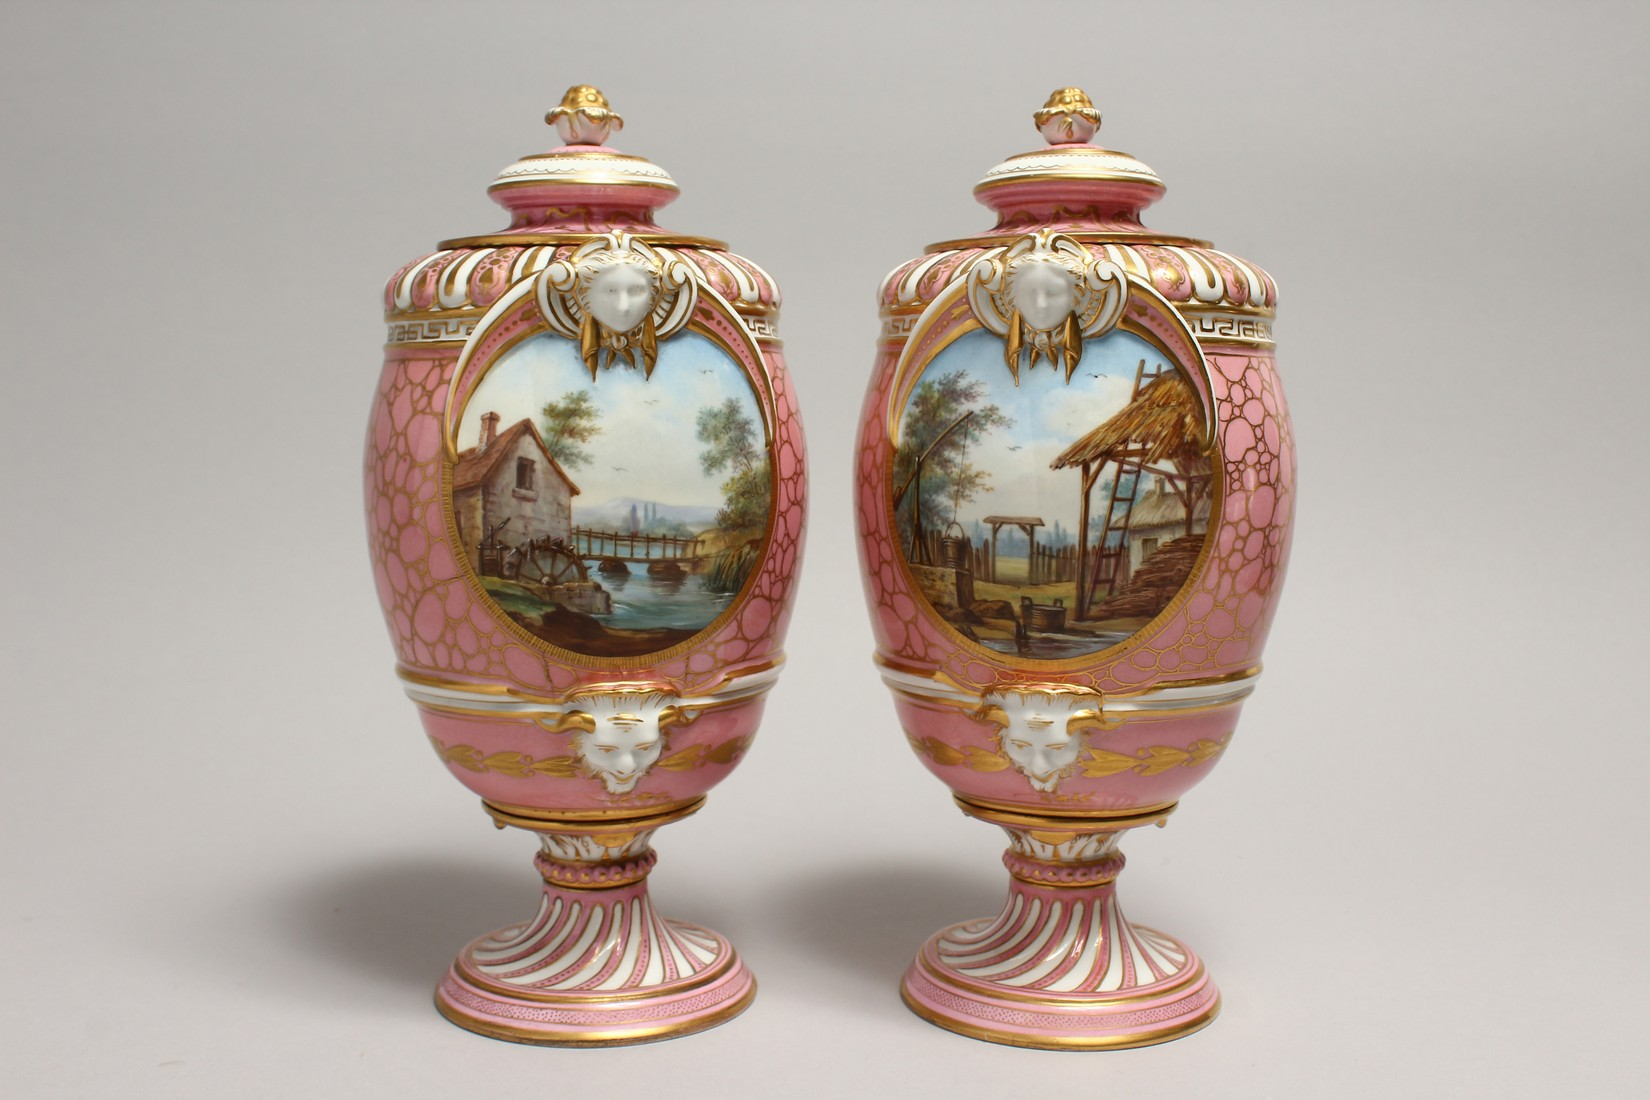 A VERY GOOD PAIR OF SEVRES PINK GROUND VASES AND COVERS each painted with reverse panels of figures, - Image 5 of 12